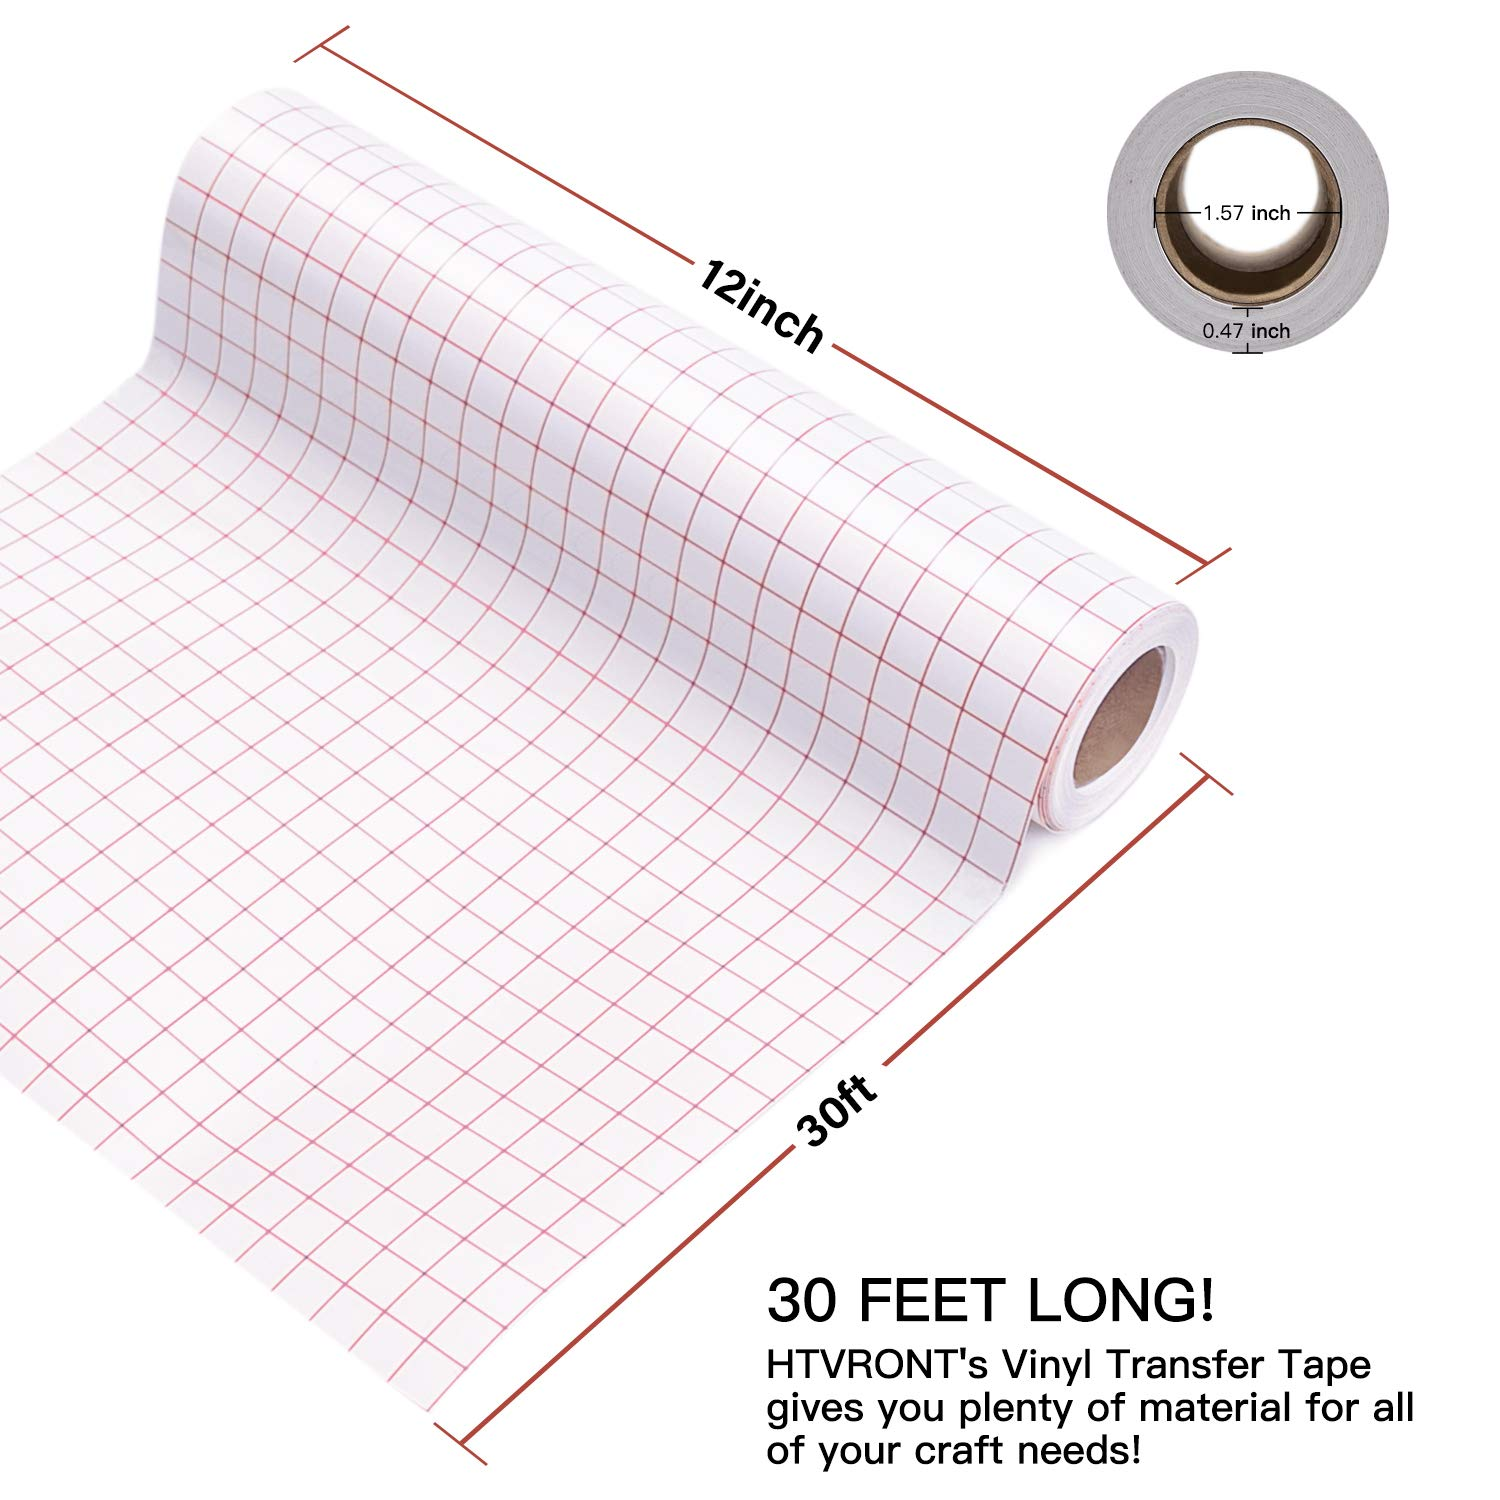 Transfer Tape for Vinyl 12 x 30 Feet Clear w//Red Alignment Grid Medium Tack Vinyl Transfer Tape Perfect for Cricut Cameo Self Adhesive Vinyl for Signs Stickers Decals Walls Doors /& Windows